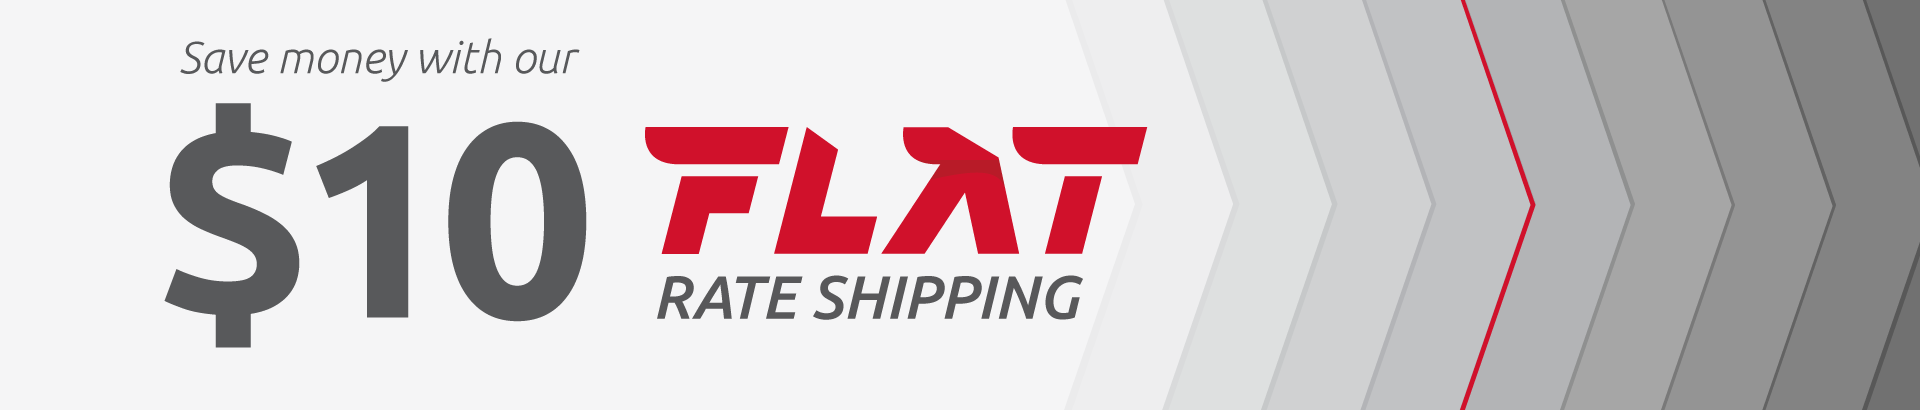 Flat-Rate-Shipping_Launch-2017.png